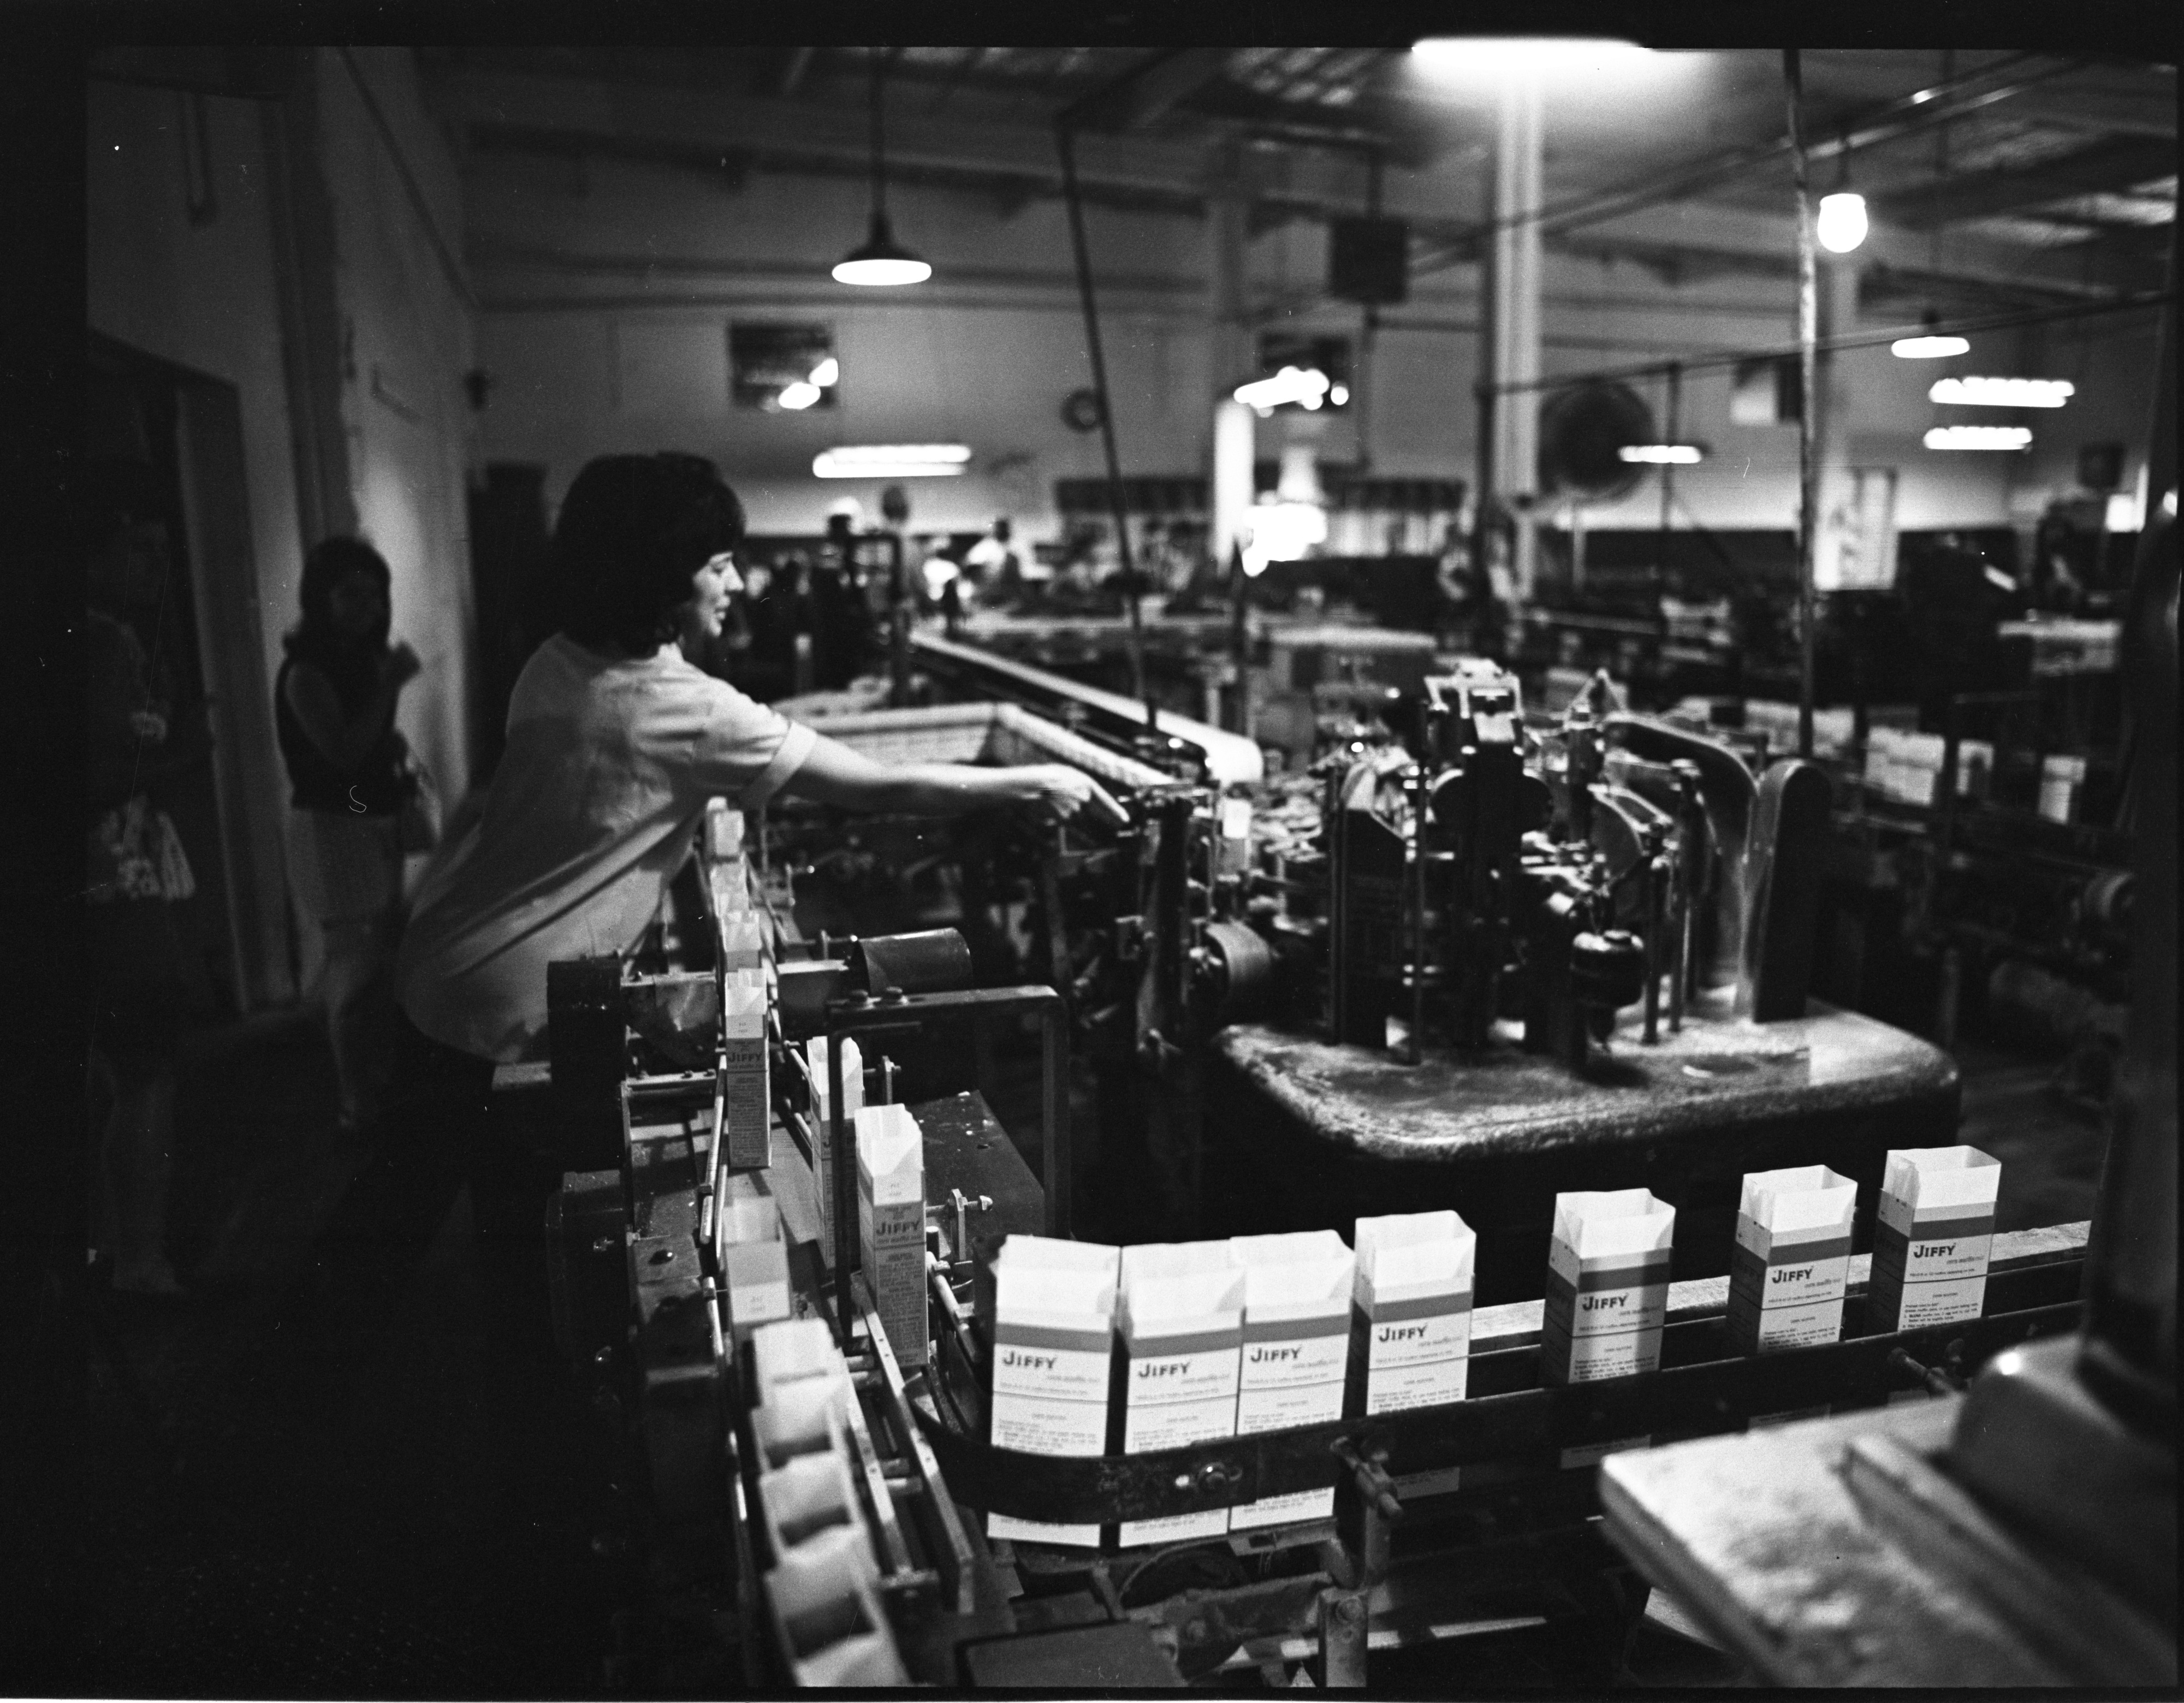 Boxes Of Jiffy Mix Are Inspected As They Travel The Chelsea Milling Assembly Lines, July 1973 image